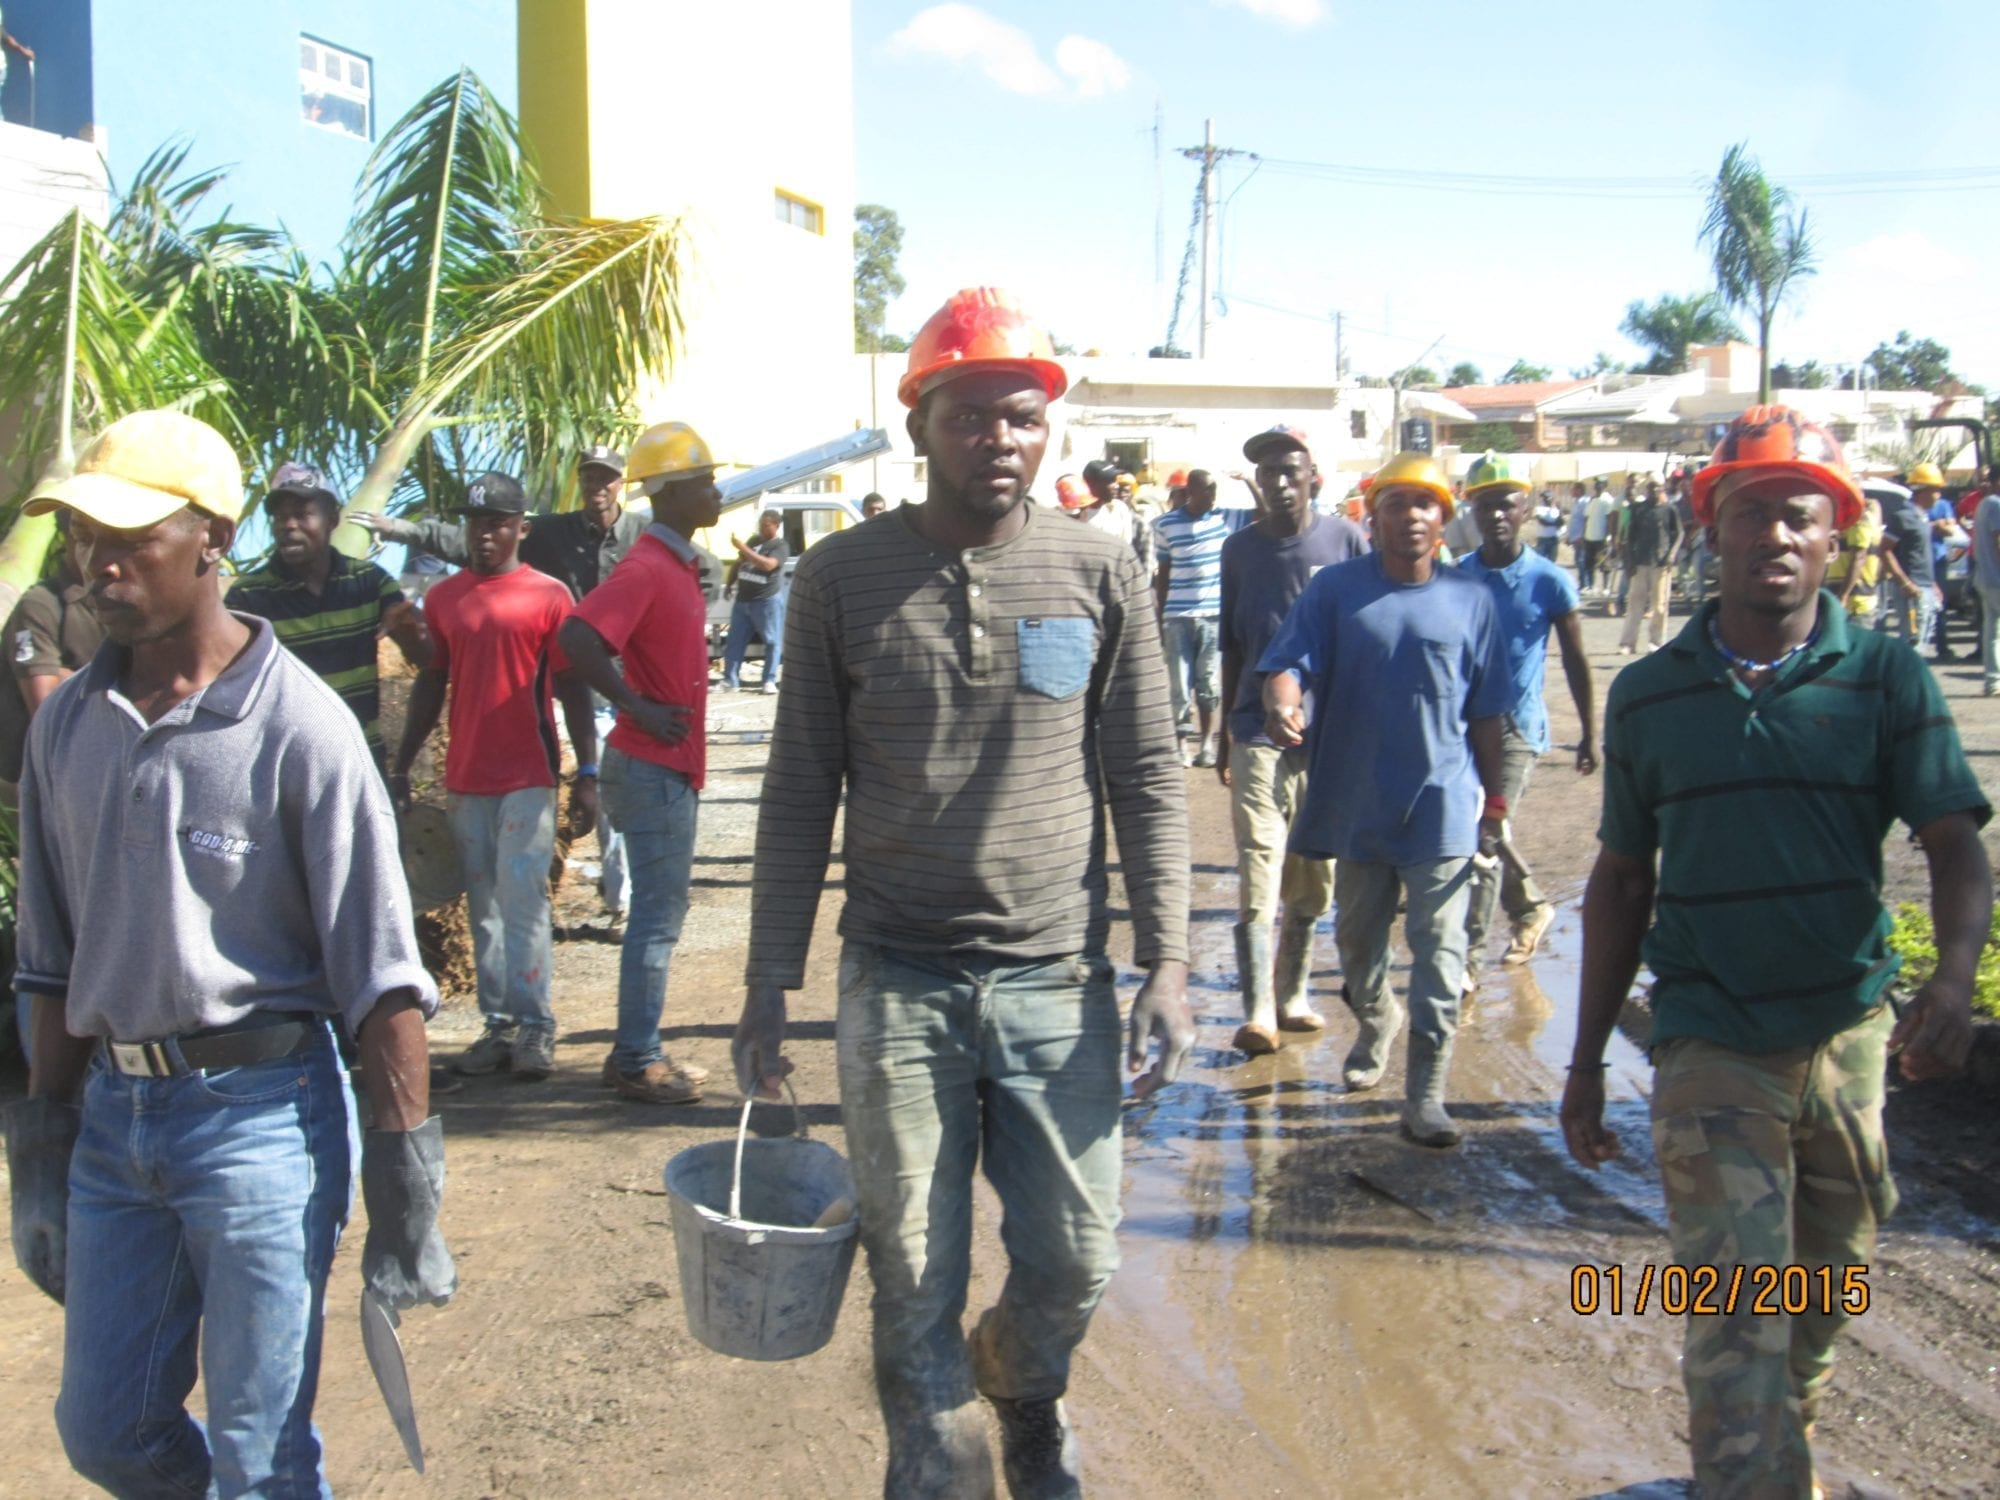 Haitian Workers Say They Were Shot for Asking to Be Paid